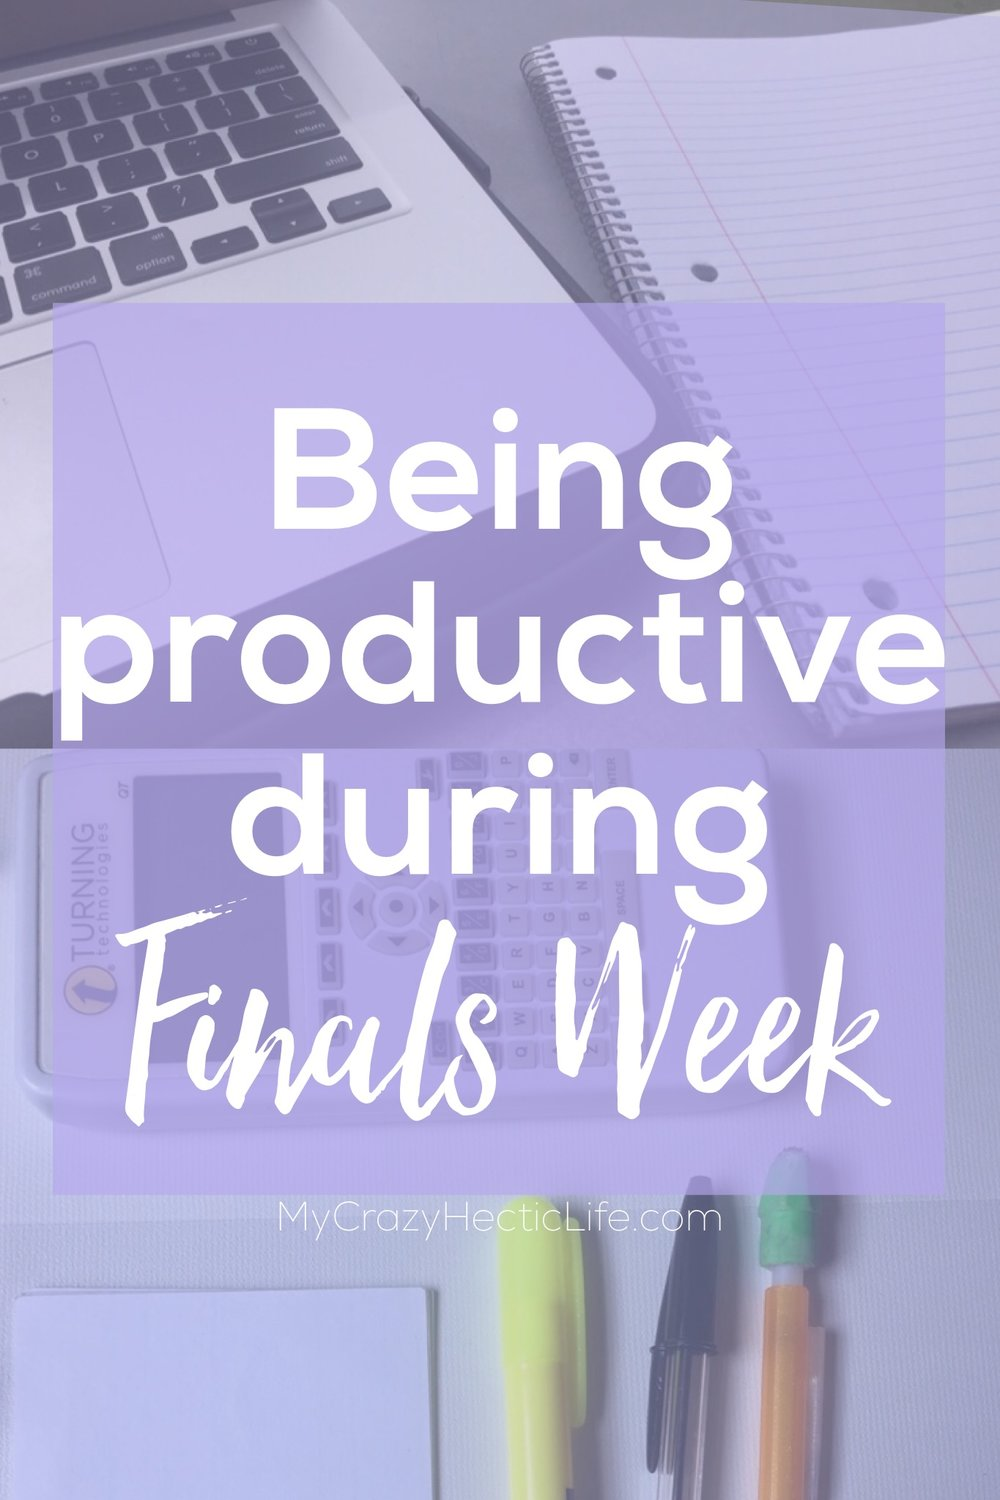 Don't let finals week stop you from getting stuff done!